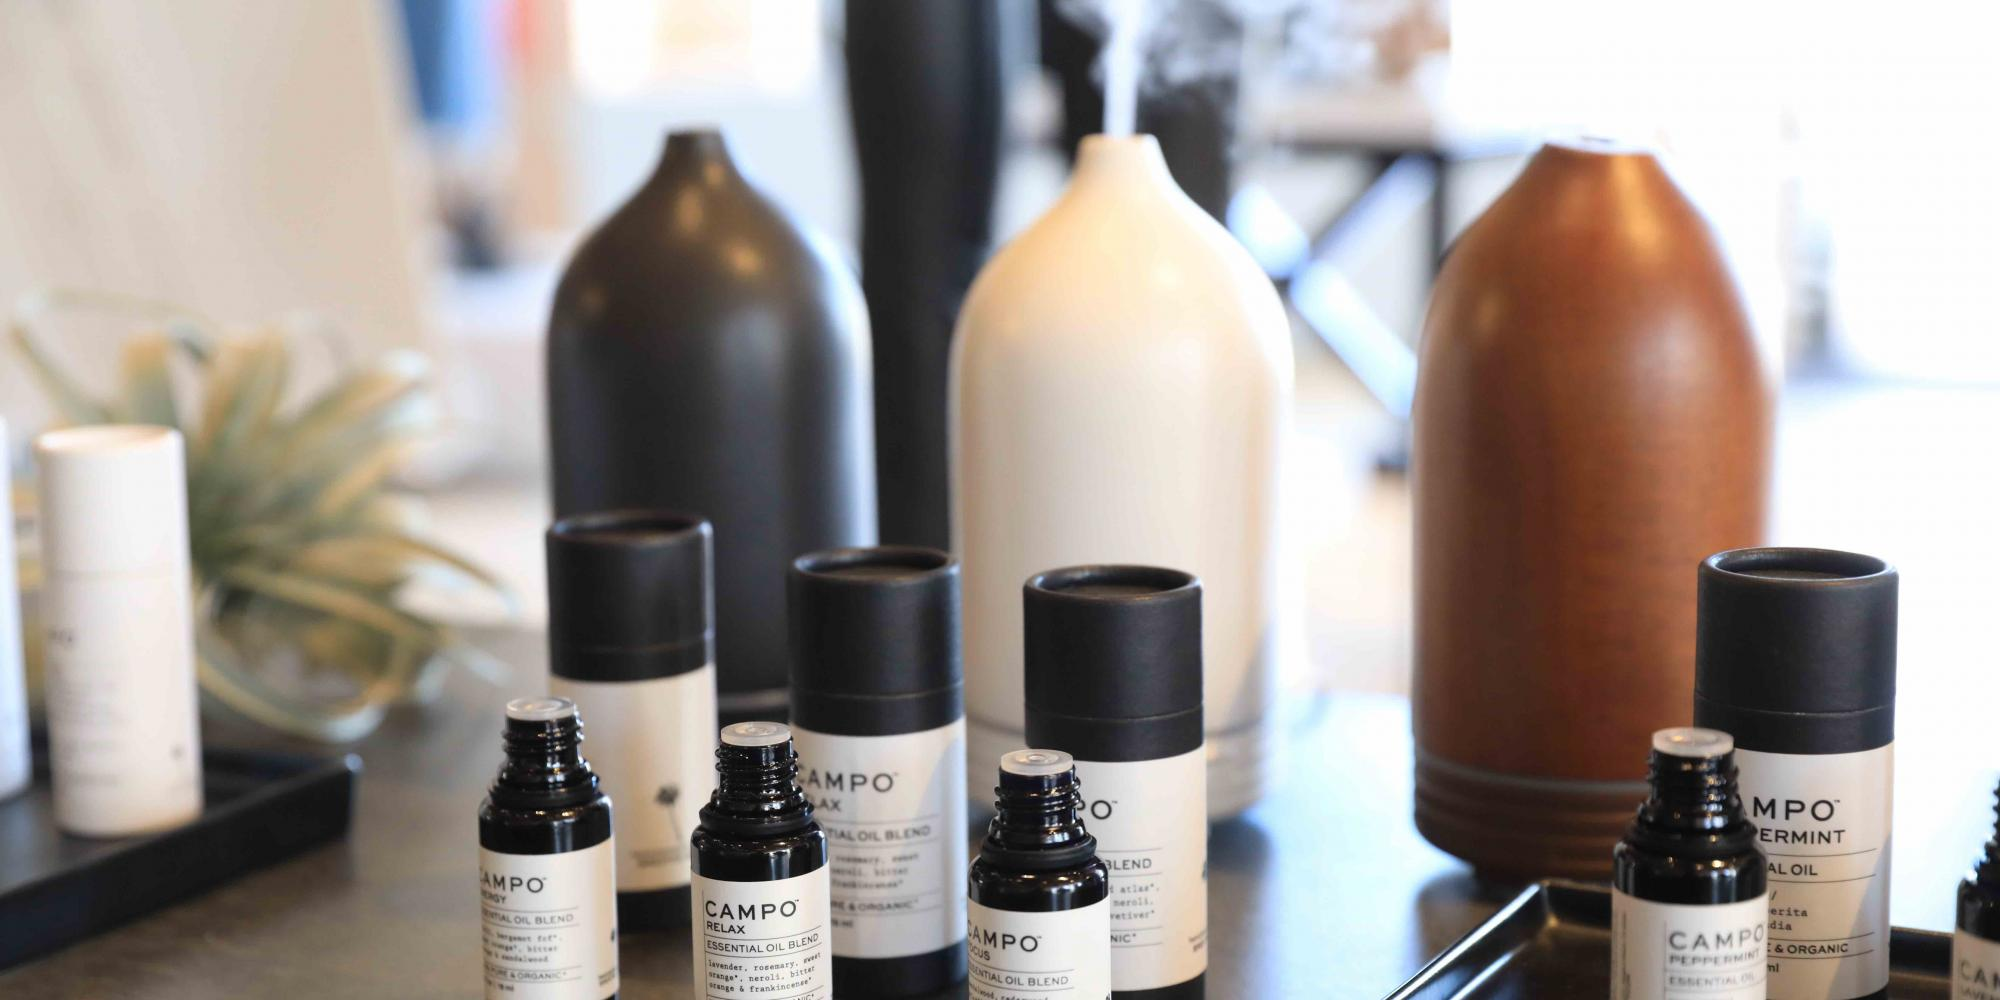 BFFs Jessica Frandson And Jill King Are Breathing New Life Into Aromatherapy With Well-Oiled Luxury Brand Campo